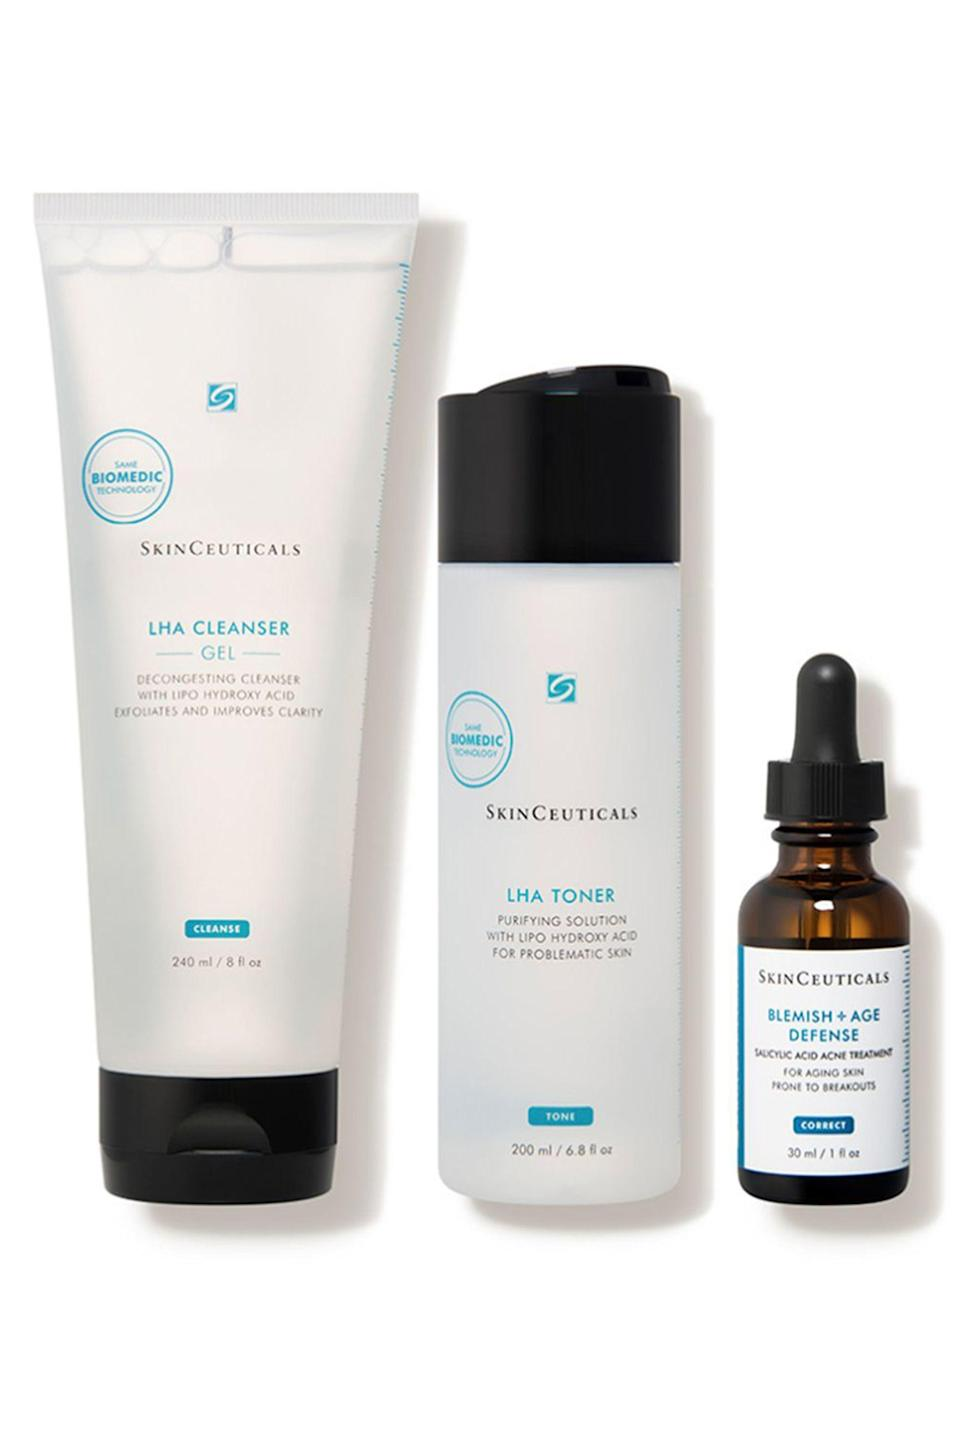 """<p><strong>SkinCeuticals</strong></p><p>dermstore.com</p><p><strong>$130.00</strong></p><p><a href=""""https://go.redirectingat.com?id=74968X1596630&url=http%3A%2F%2Fwww.dermstore.com%2Fproduct_Adult%2BAntiAcne%2BSystem_38329.htm&sref=https%3A%2F%2Fwww.elle.com%2Fbeauty%2Fmakeup-skin-care%2Fg33433197%2Fbest-skin-care-sets%2F"""" rel=""""nofollow noopener"""" target=""""_blank"""" data-ylk=""""slk:Shop Now"""" class=""""link rapid-noclick-resp"""">Shop Now</a></p><p>Adulting comes with its successes and failures, but one thing that's difficult to combat is adult acne. Skinceuticals has the remedy. Featuring three products—cleanser, toner, and serum—the simple three-step process aims to correct visible imperfections that come with adult acne. Don't forget your SPF!</p>"""